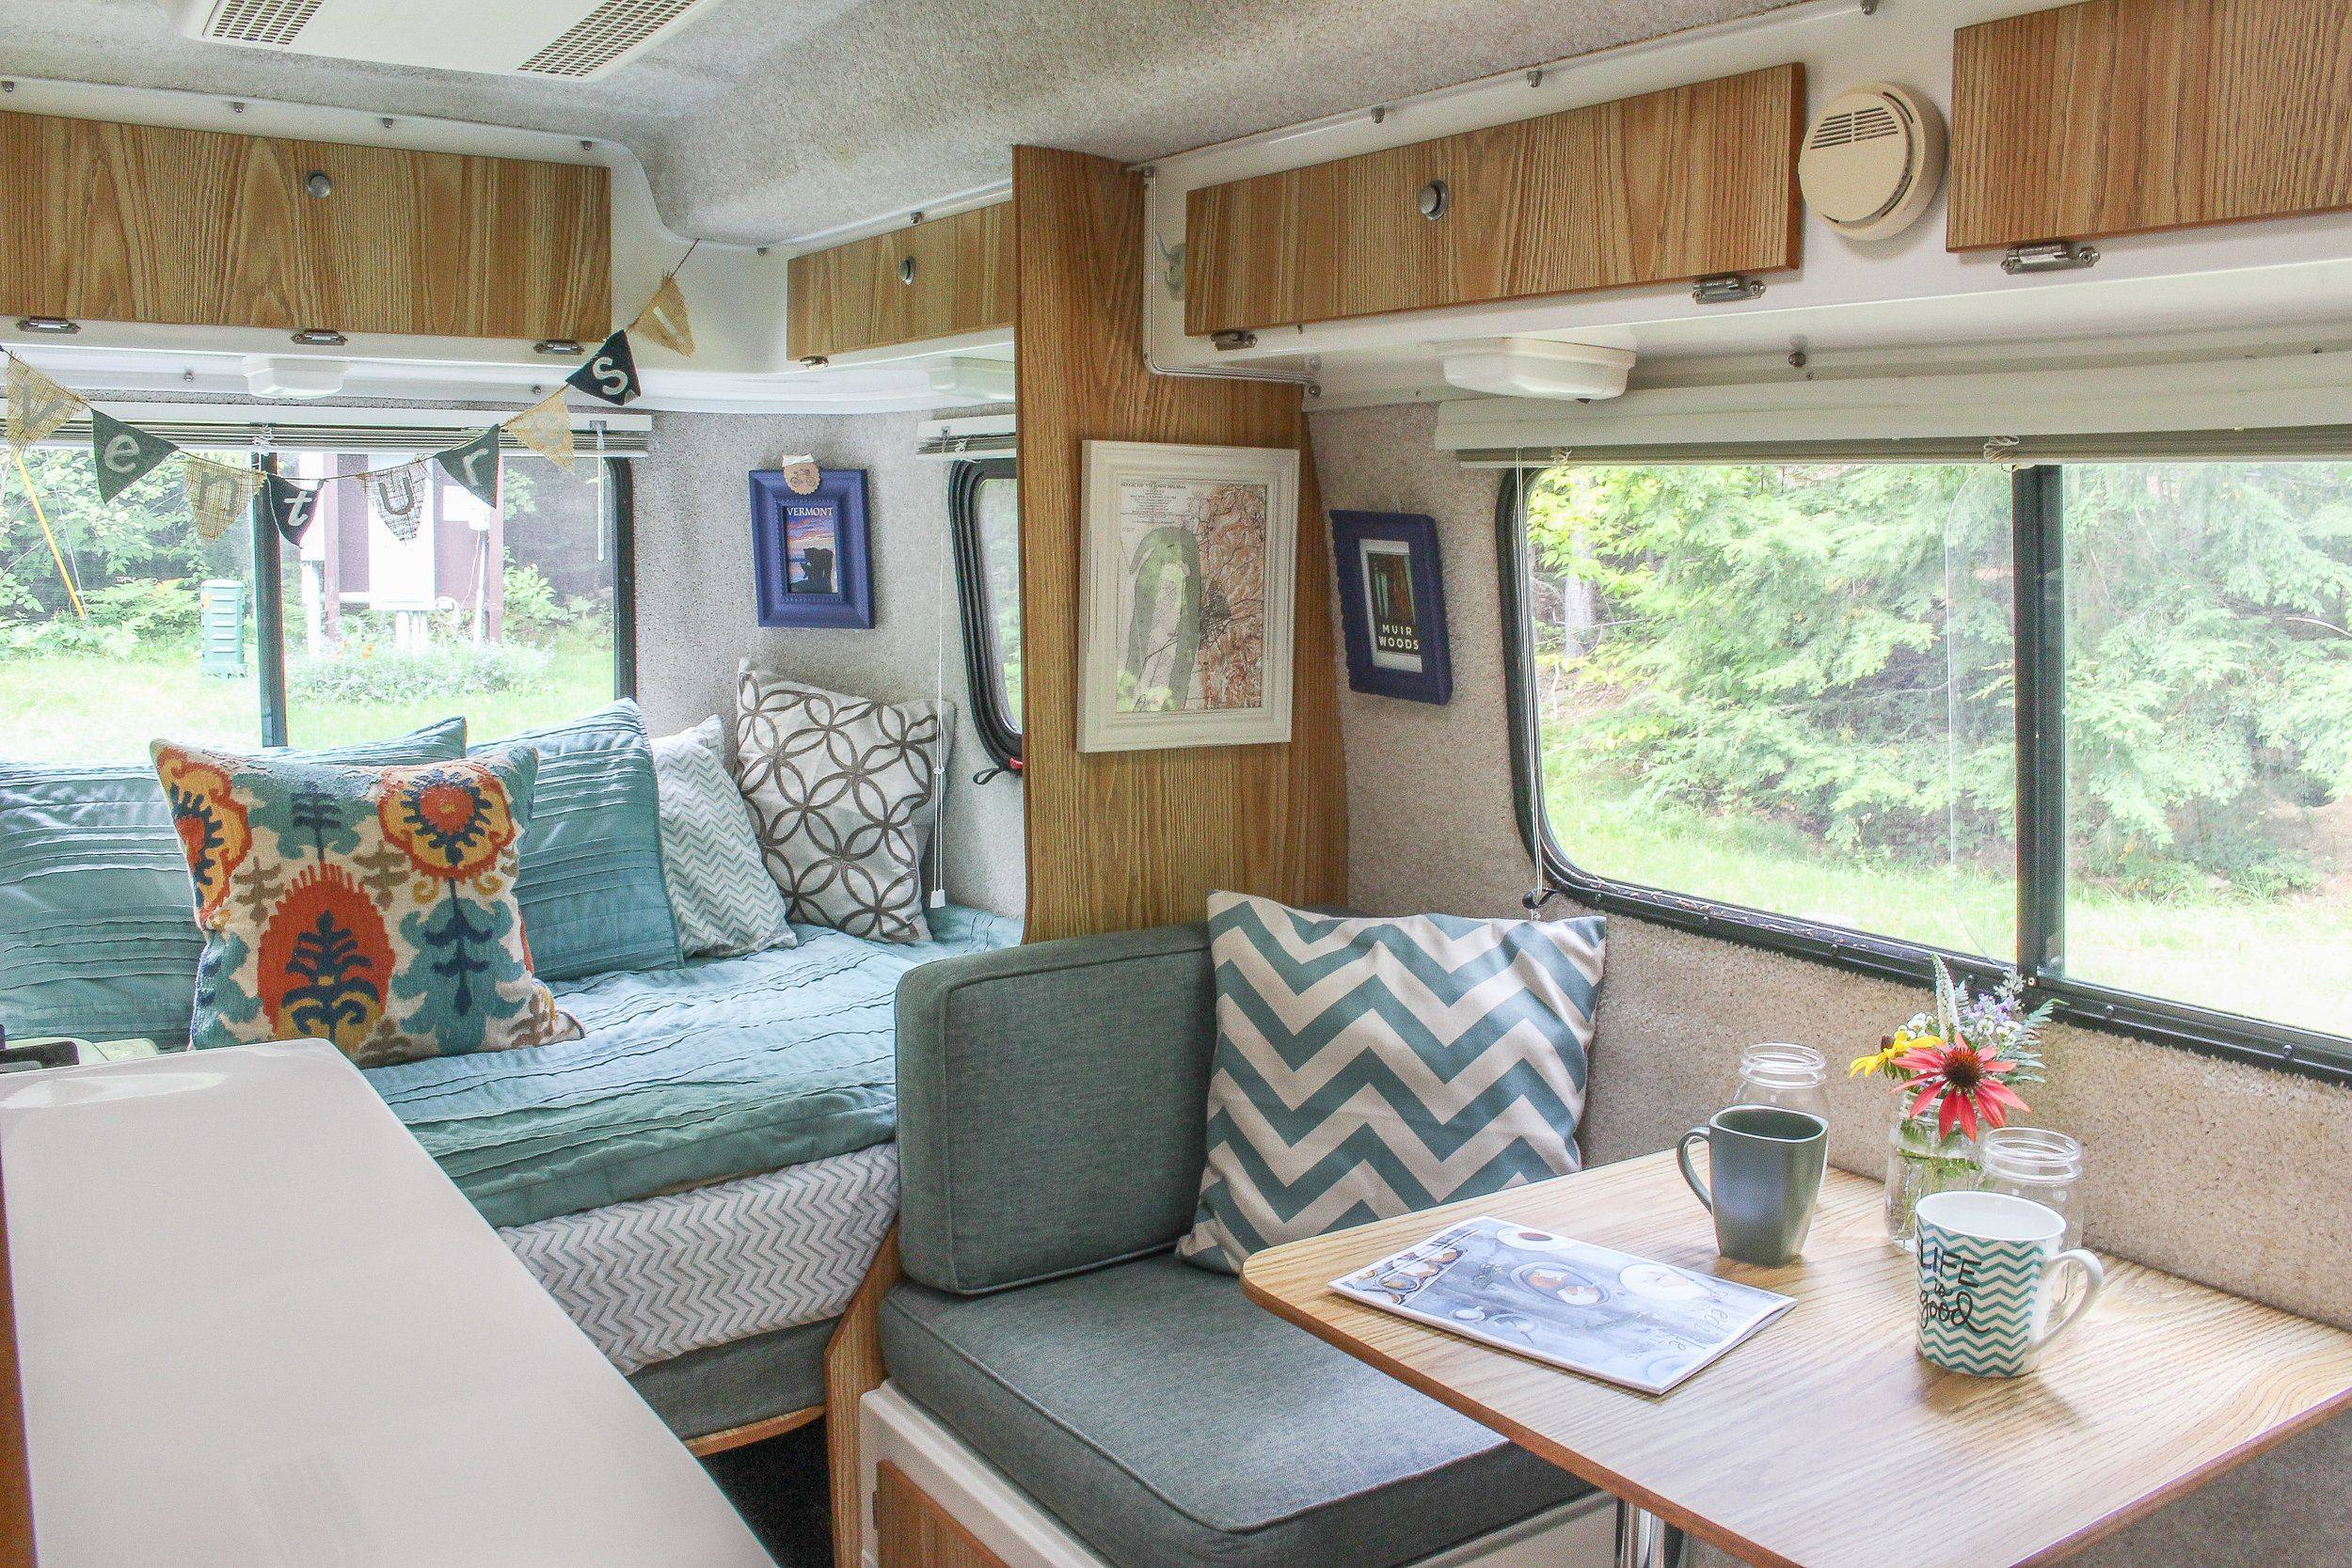 30+ Wonderful Glamper Camper Trailer Remodel - Vario Wall